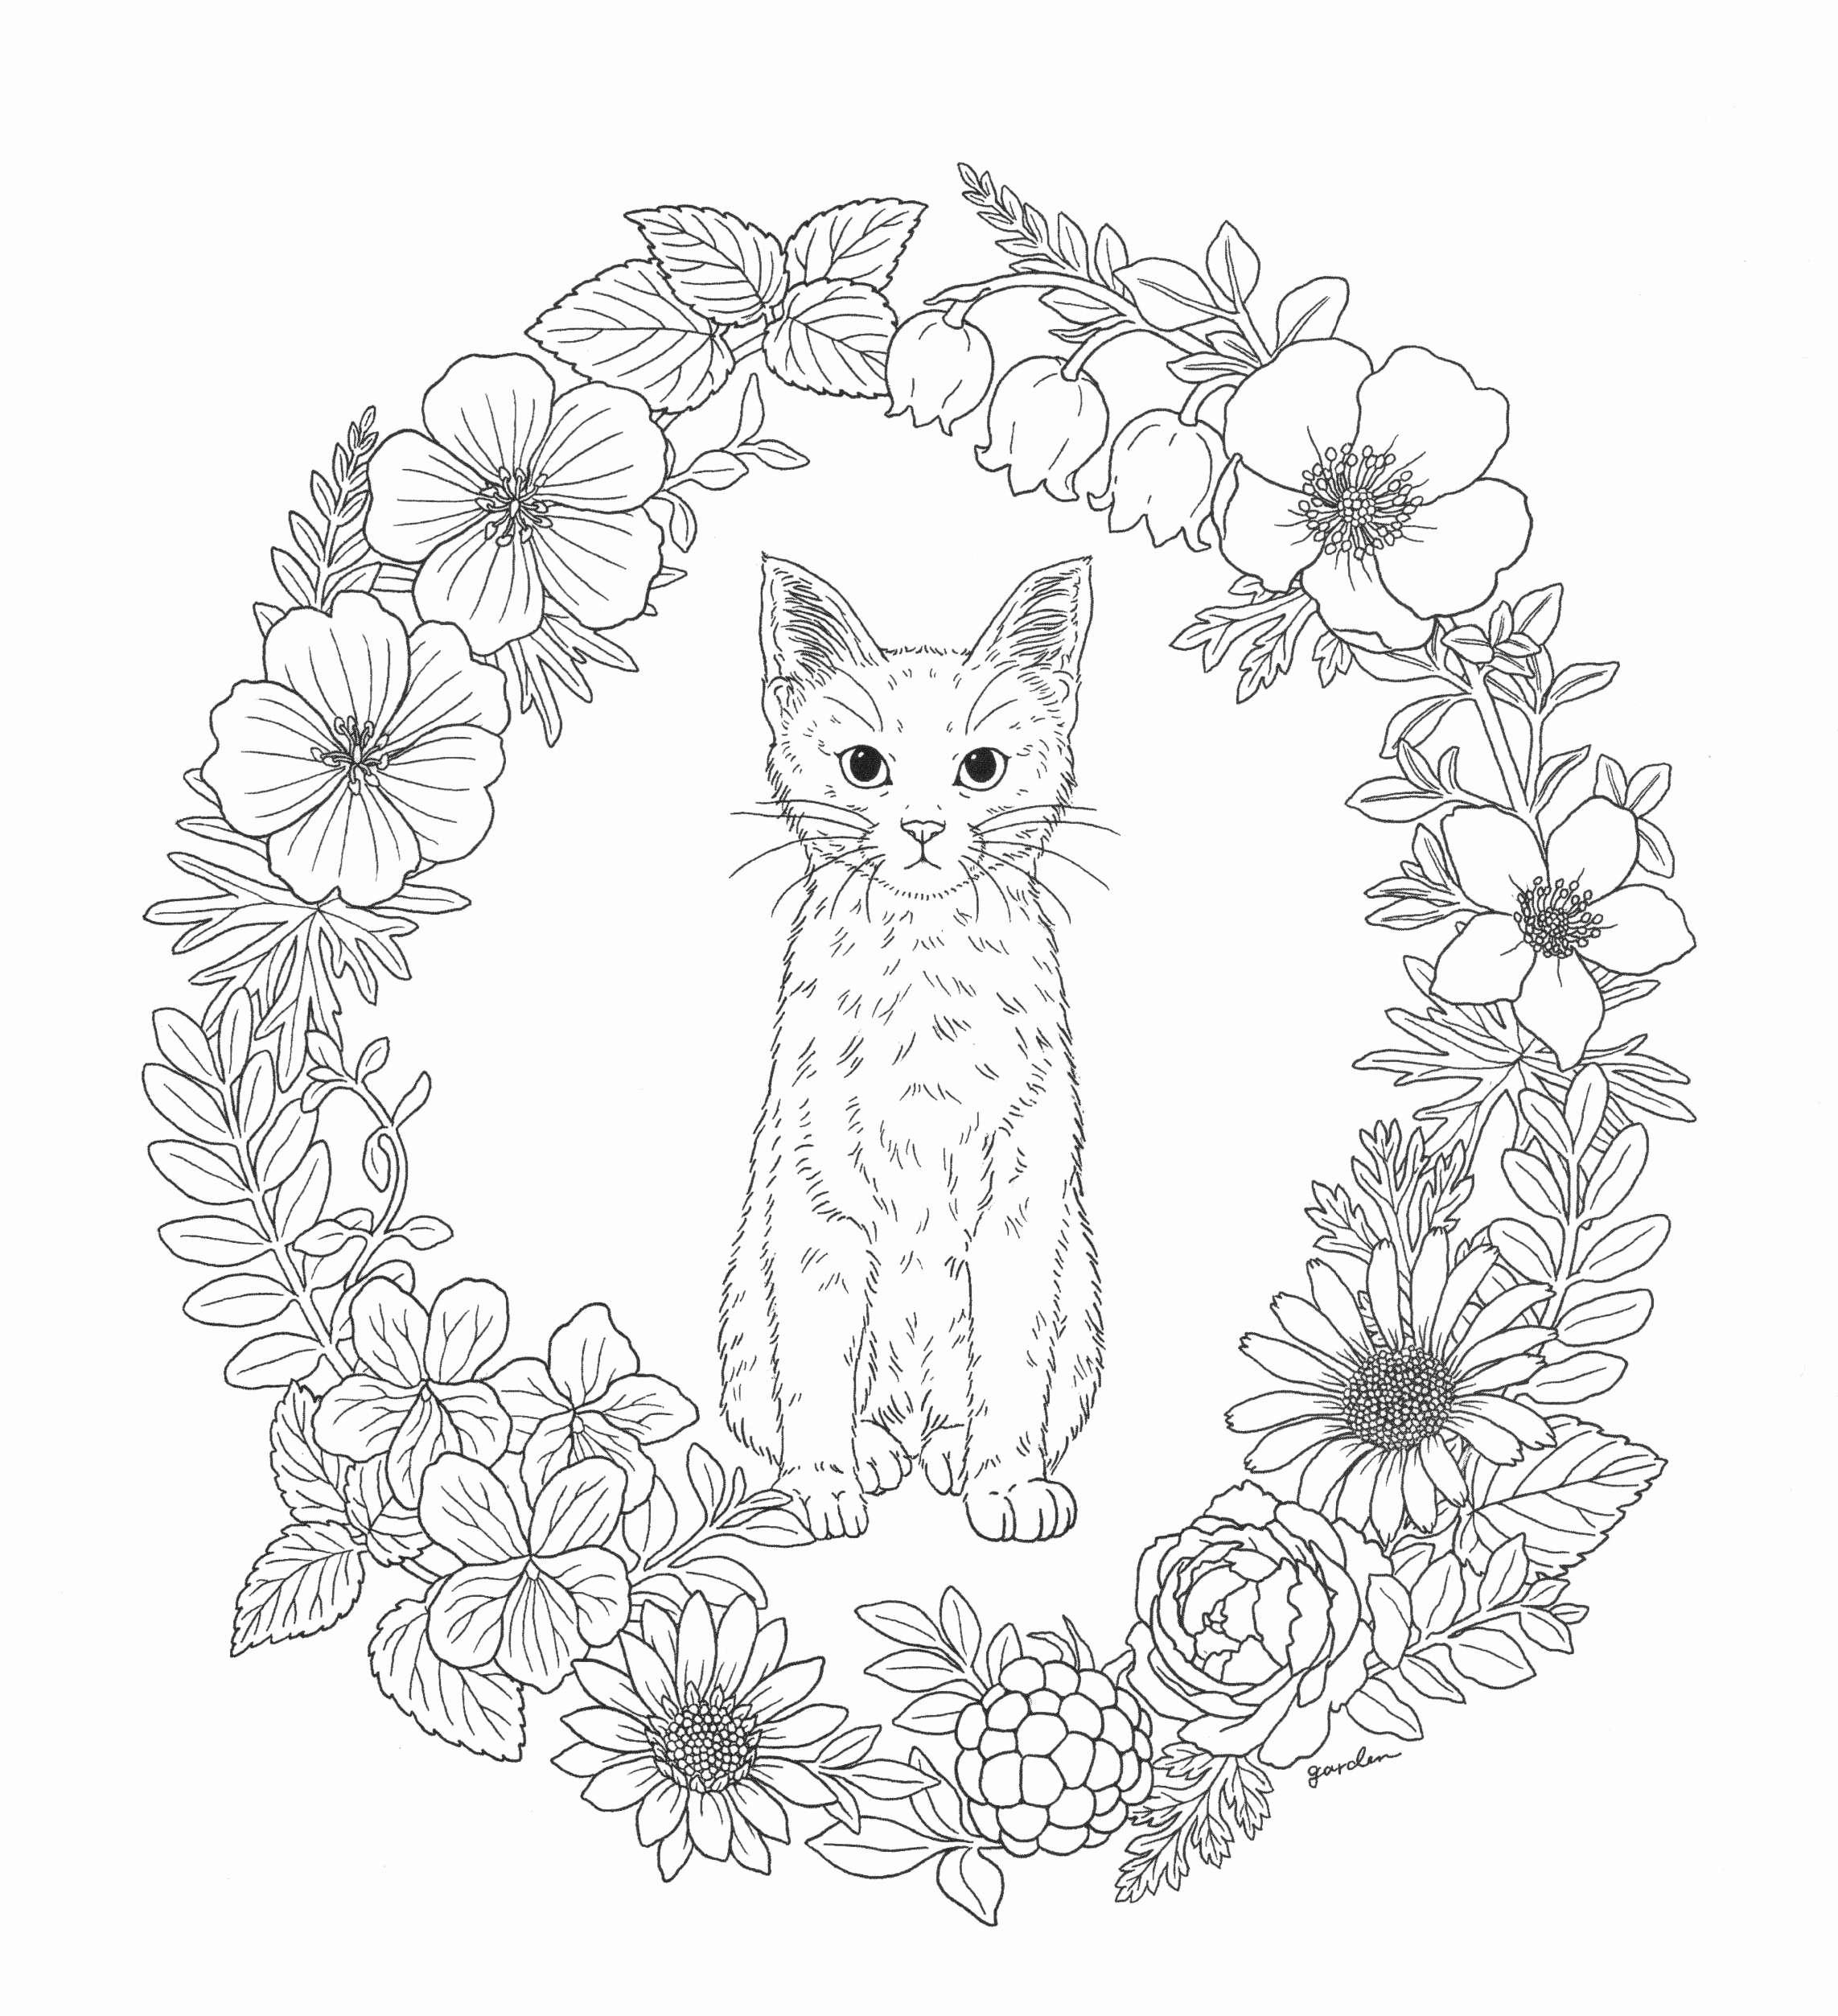 Advanced Animal Coloring Pages Printable | Free Coloring ...